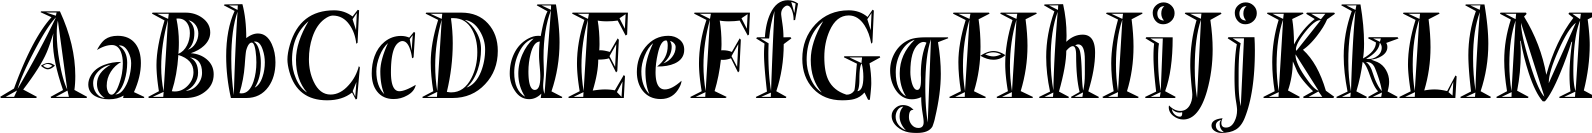 Barracuda Bold Relief Font